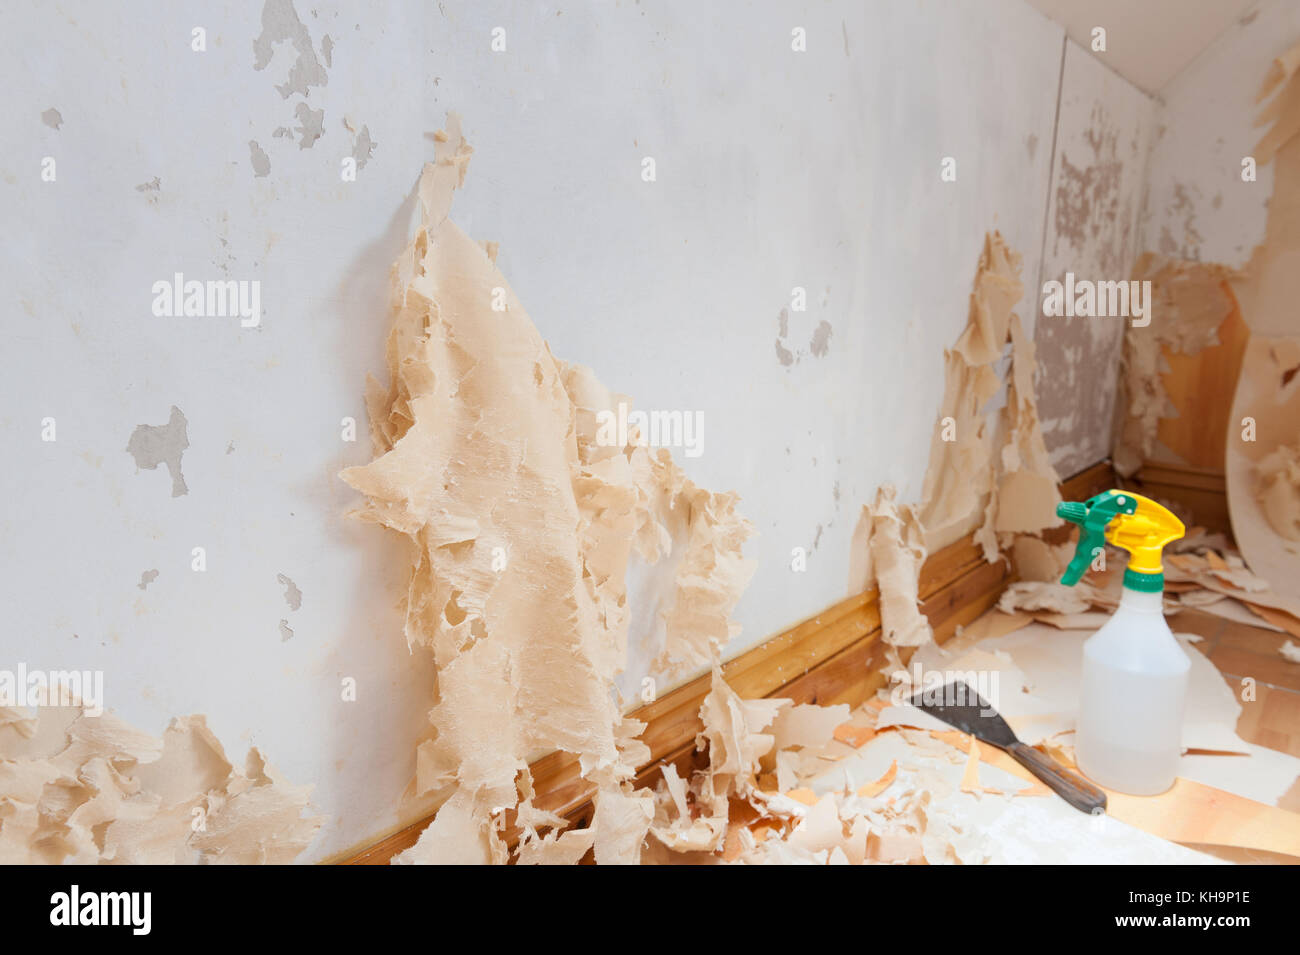 Stripping wallpaper stock photos stripping wallpaper for How hard is it to remove wallpaper